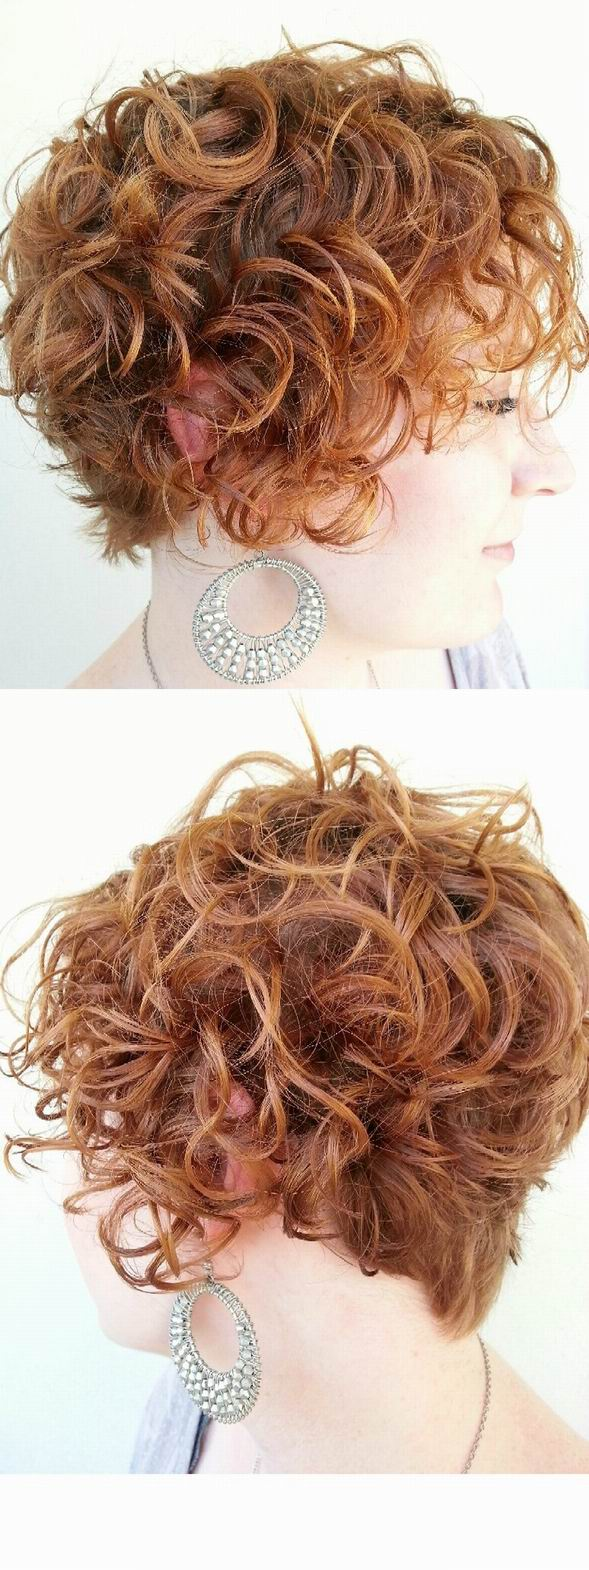 Fantastic 32 Easy Hairstyles For Curly Hair For Short Long Amp Shoulder Hairstyle Inspiration Daily Dogsangcom